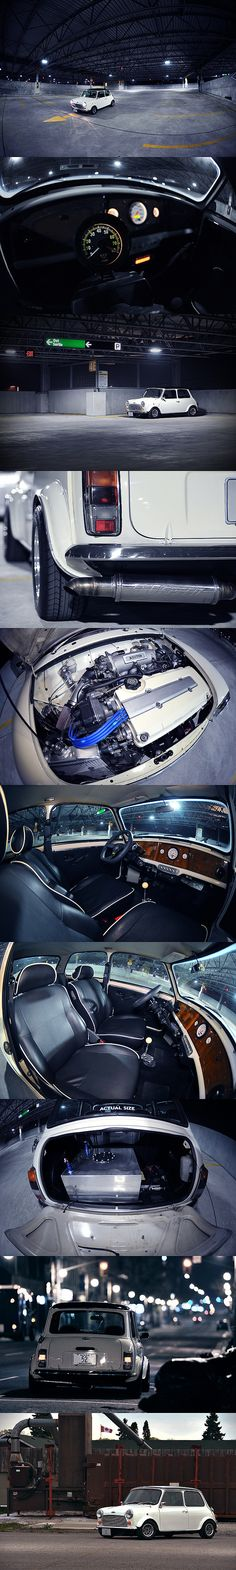 Just love minis ♡ Mini Cooper Classic, Classic Mini, Classic Cars, My Dream Car, Dream Cars, 600 Honda, Mini Morris, Automobile, Mini Copper